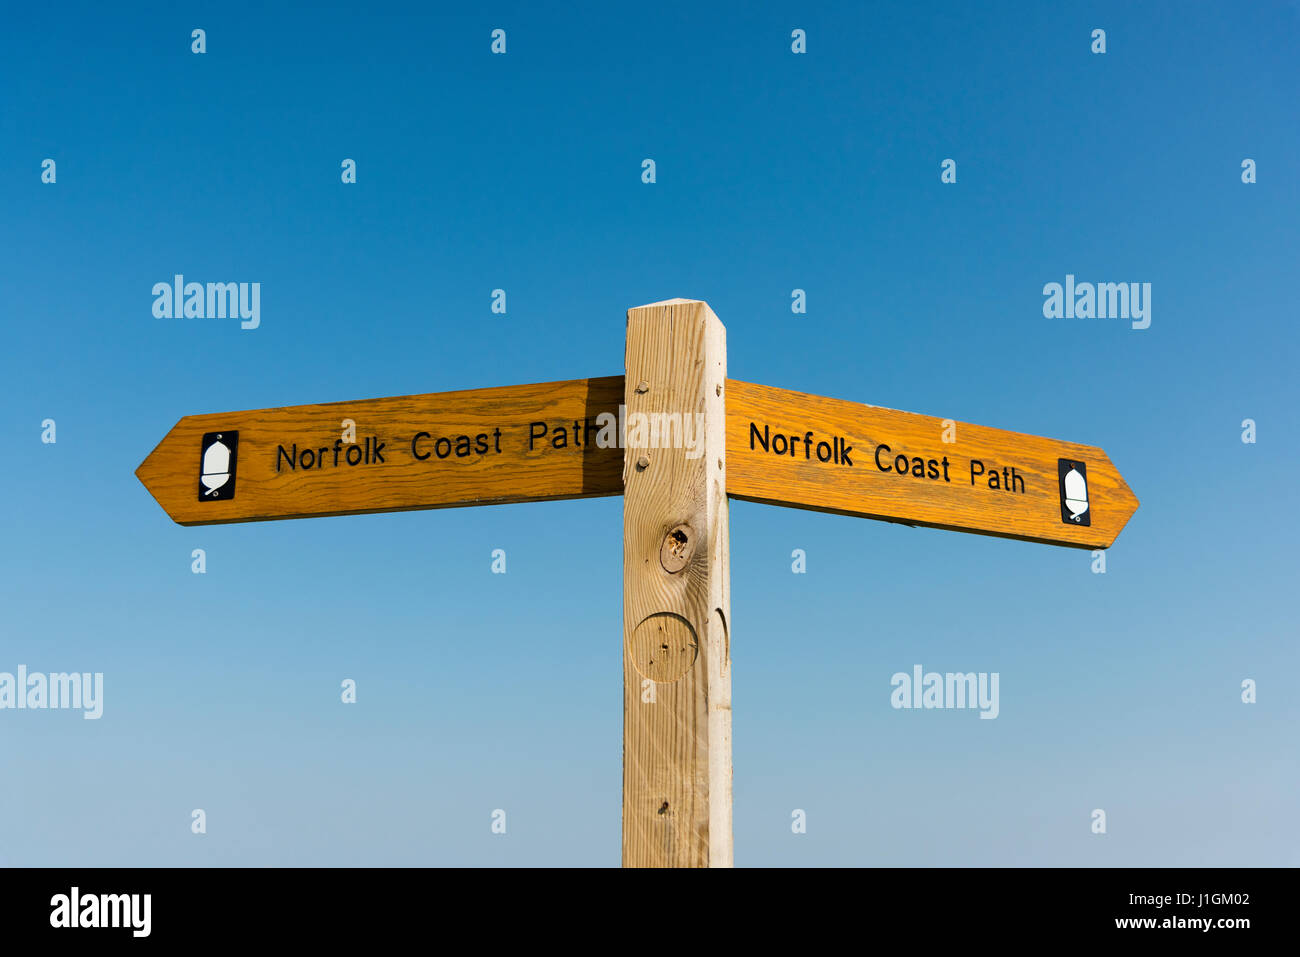 A signpost giving directions on the Norfolk Coast Path, a long distance footpath around the coast of Norfolk UK - Stock Image